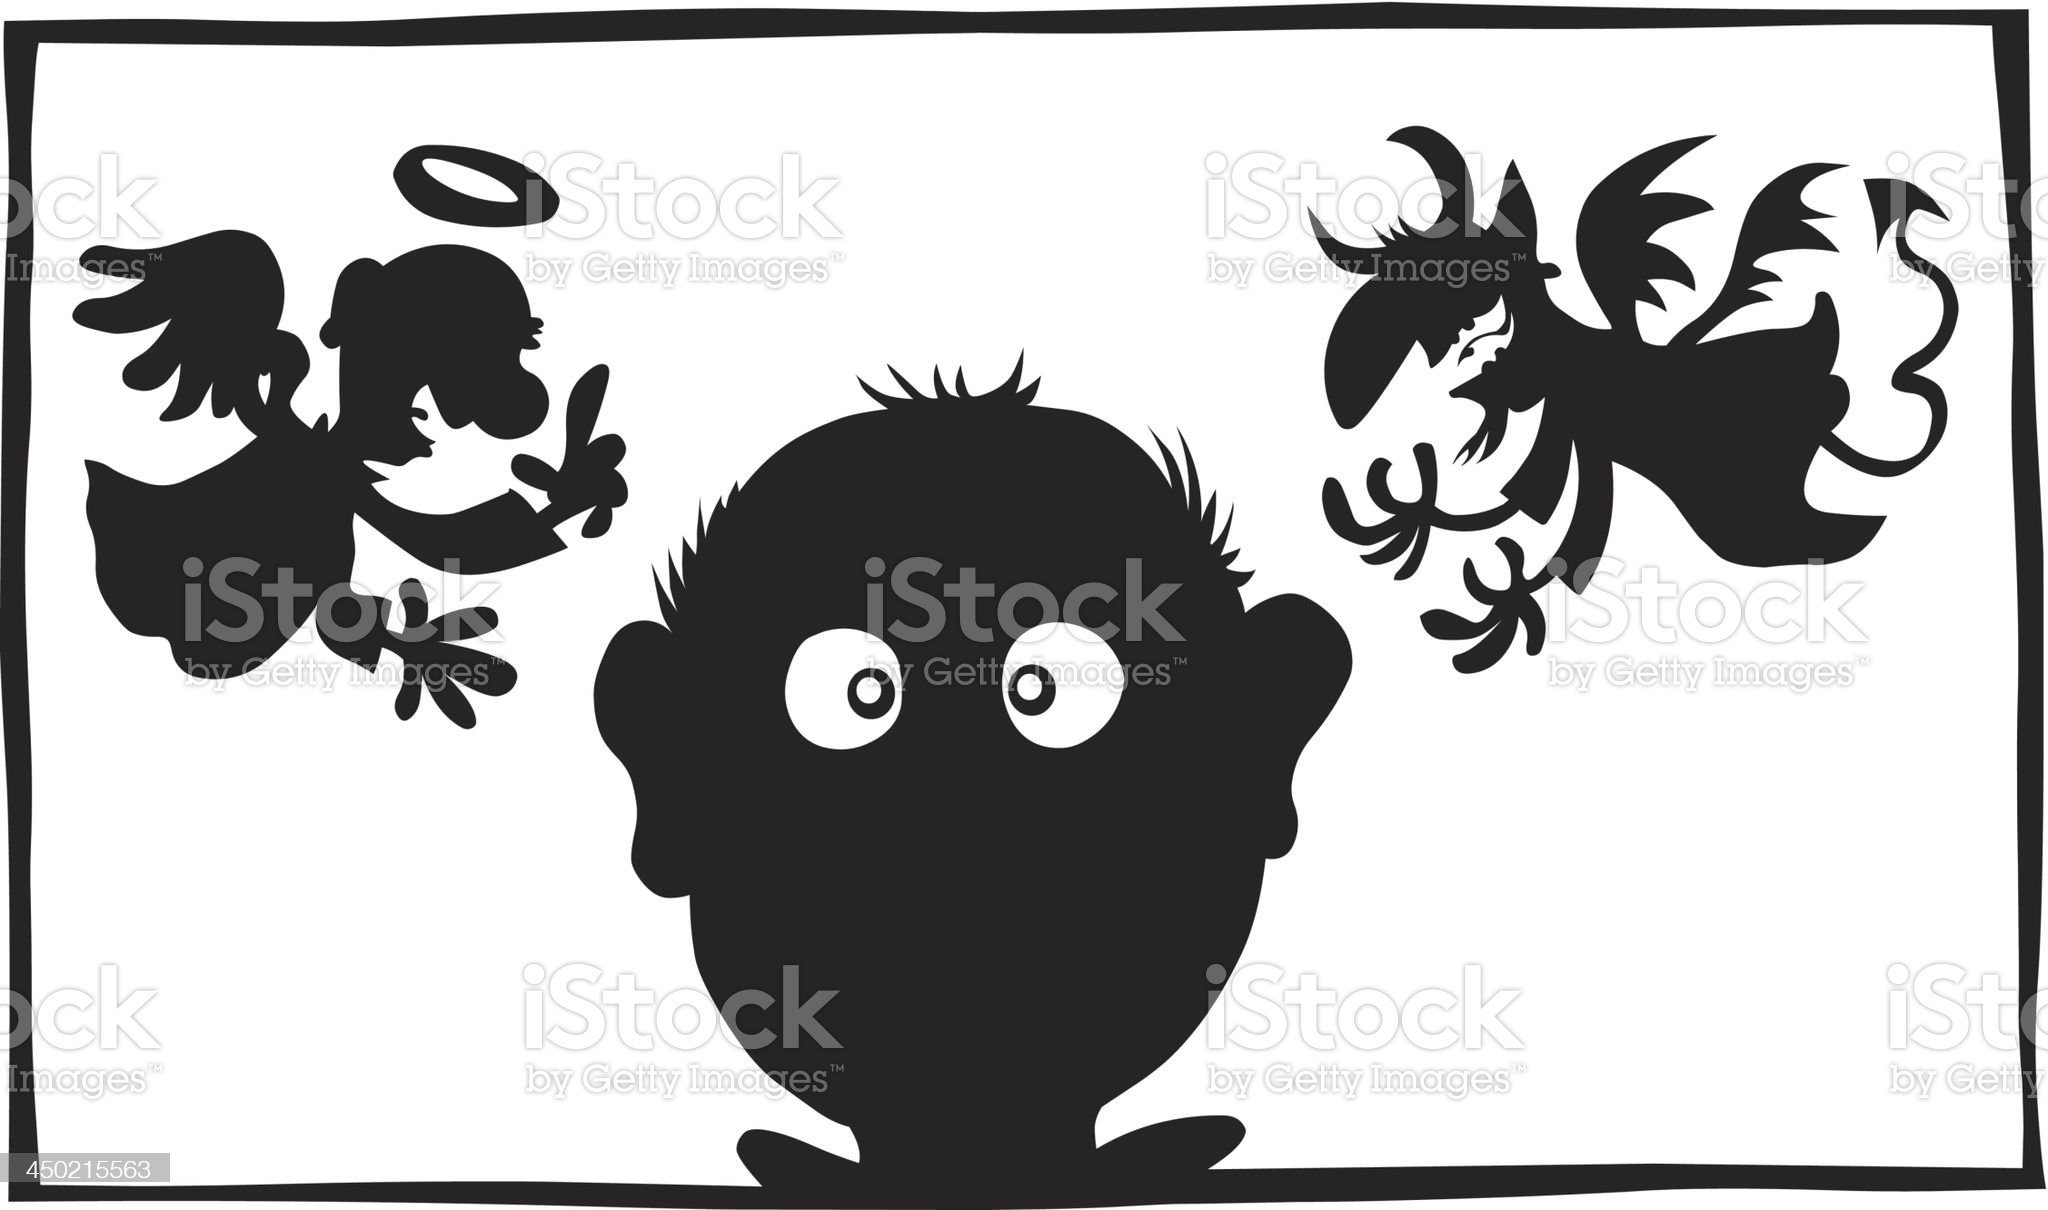 Good and Evil. royalty-free stock vector art